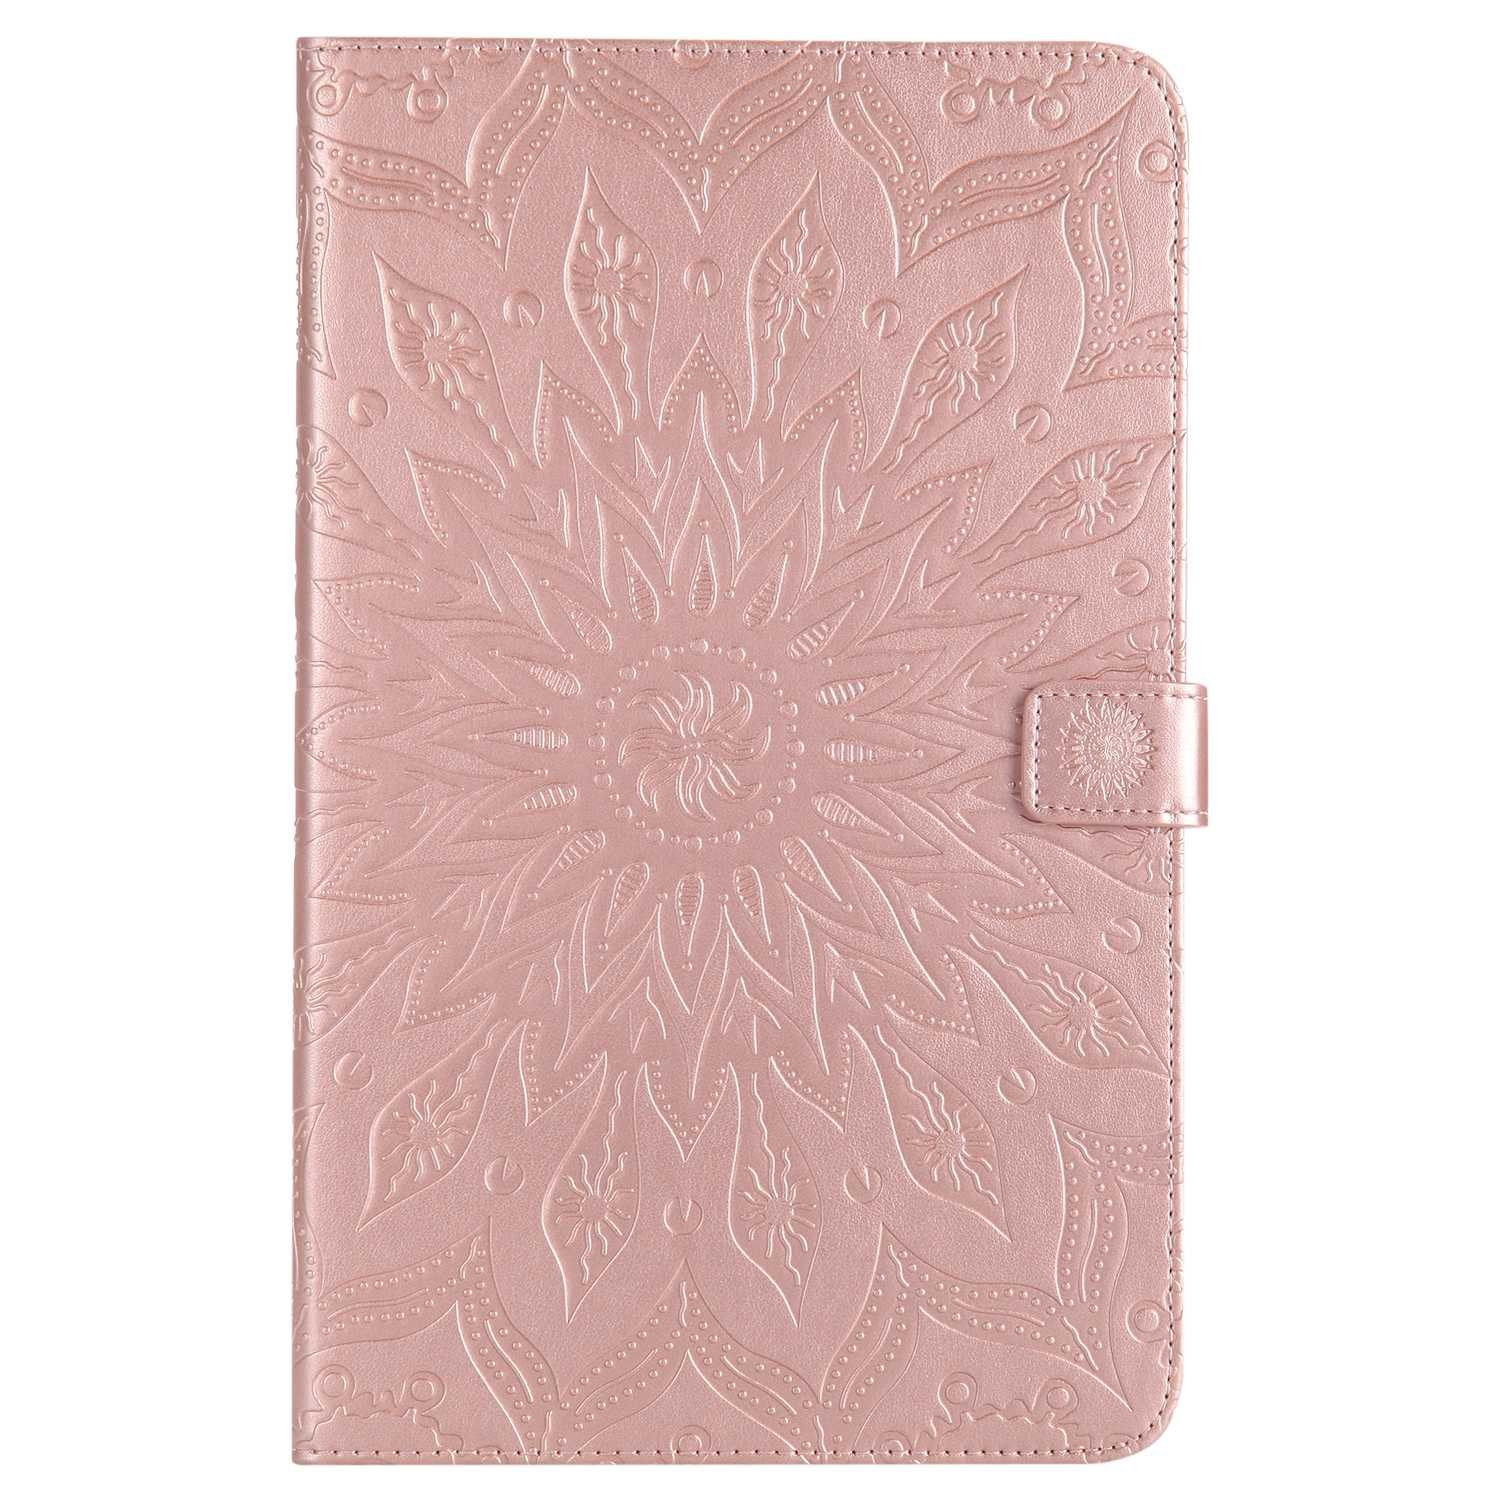 Bear Village Galaxy Tab a 10.1 Inch Case, Anti Scratch Shell with Adjust Stand, Full Body Protective Cover for Samsung Galaxy Tab a 10.1 Inch, Rose Gold by Bear Village